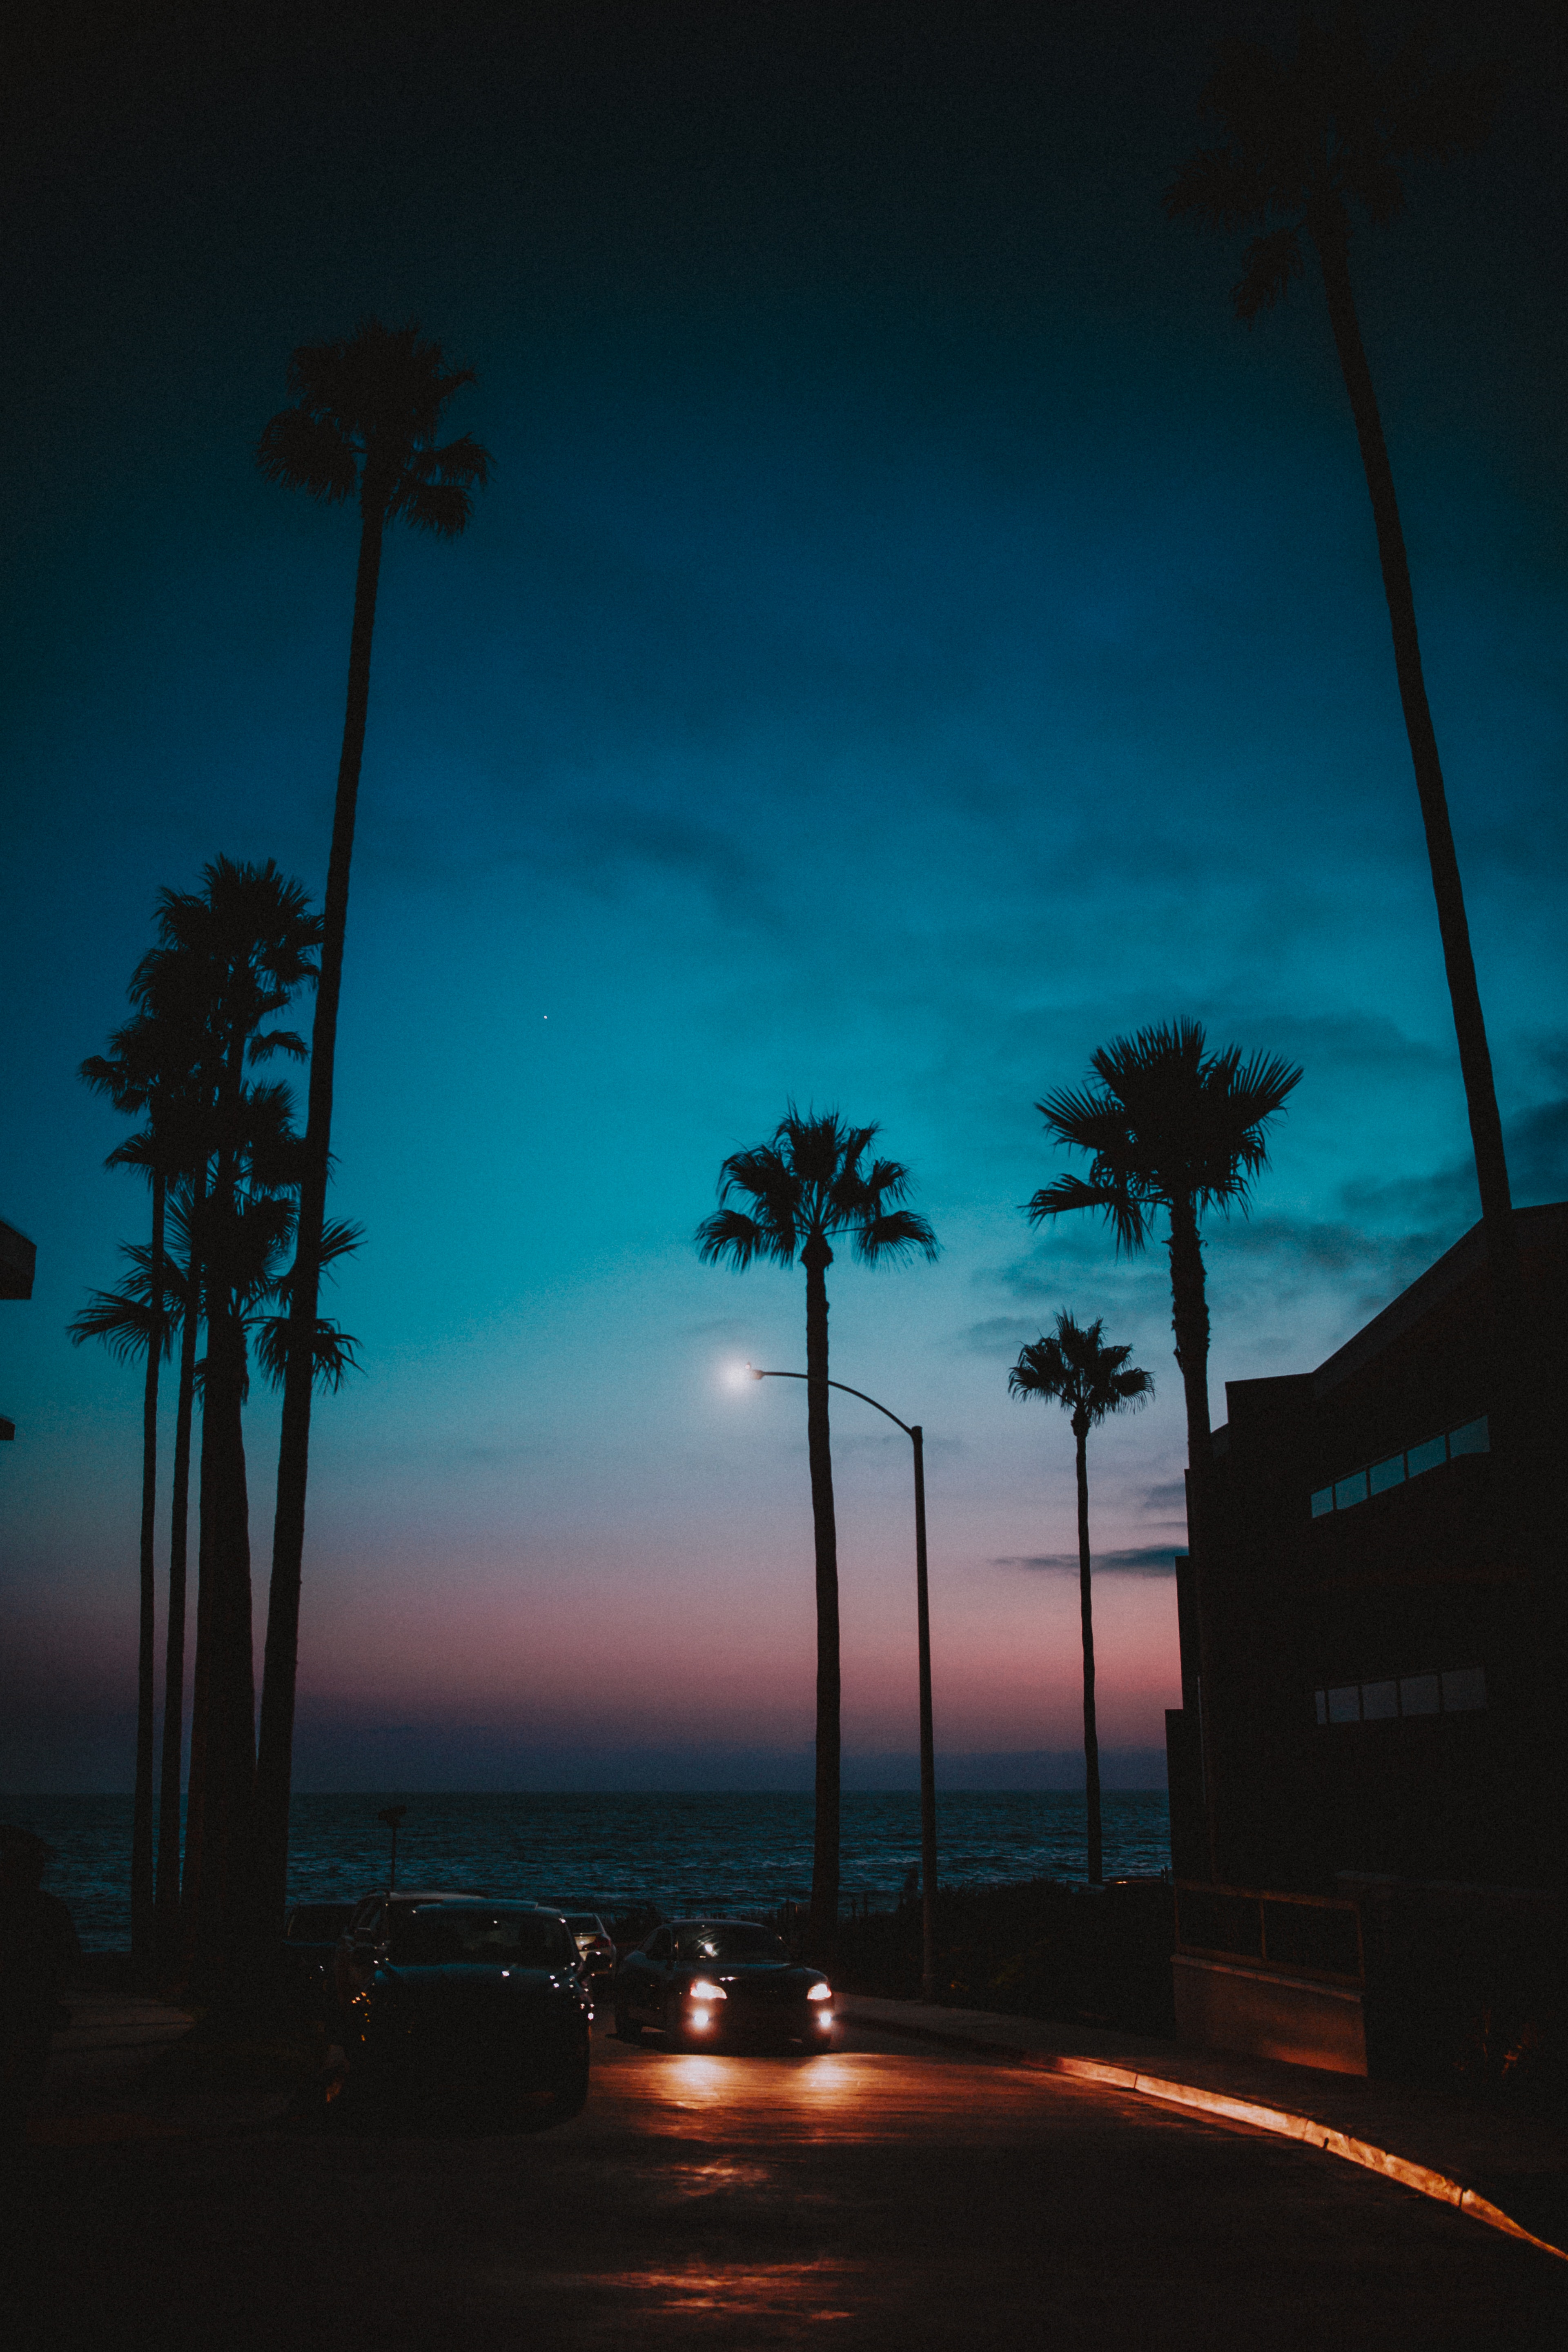 71440 download wallpaper Dark, Cars, Sunset, Night, Tropics, Palms screensavers and pictures for free